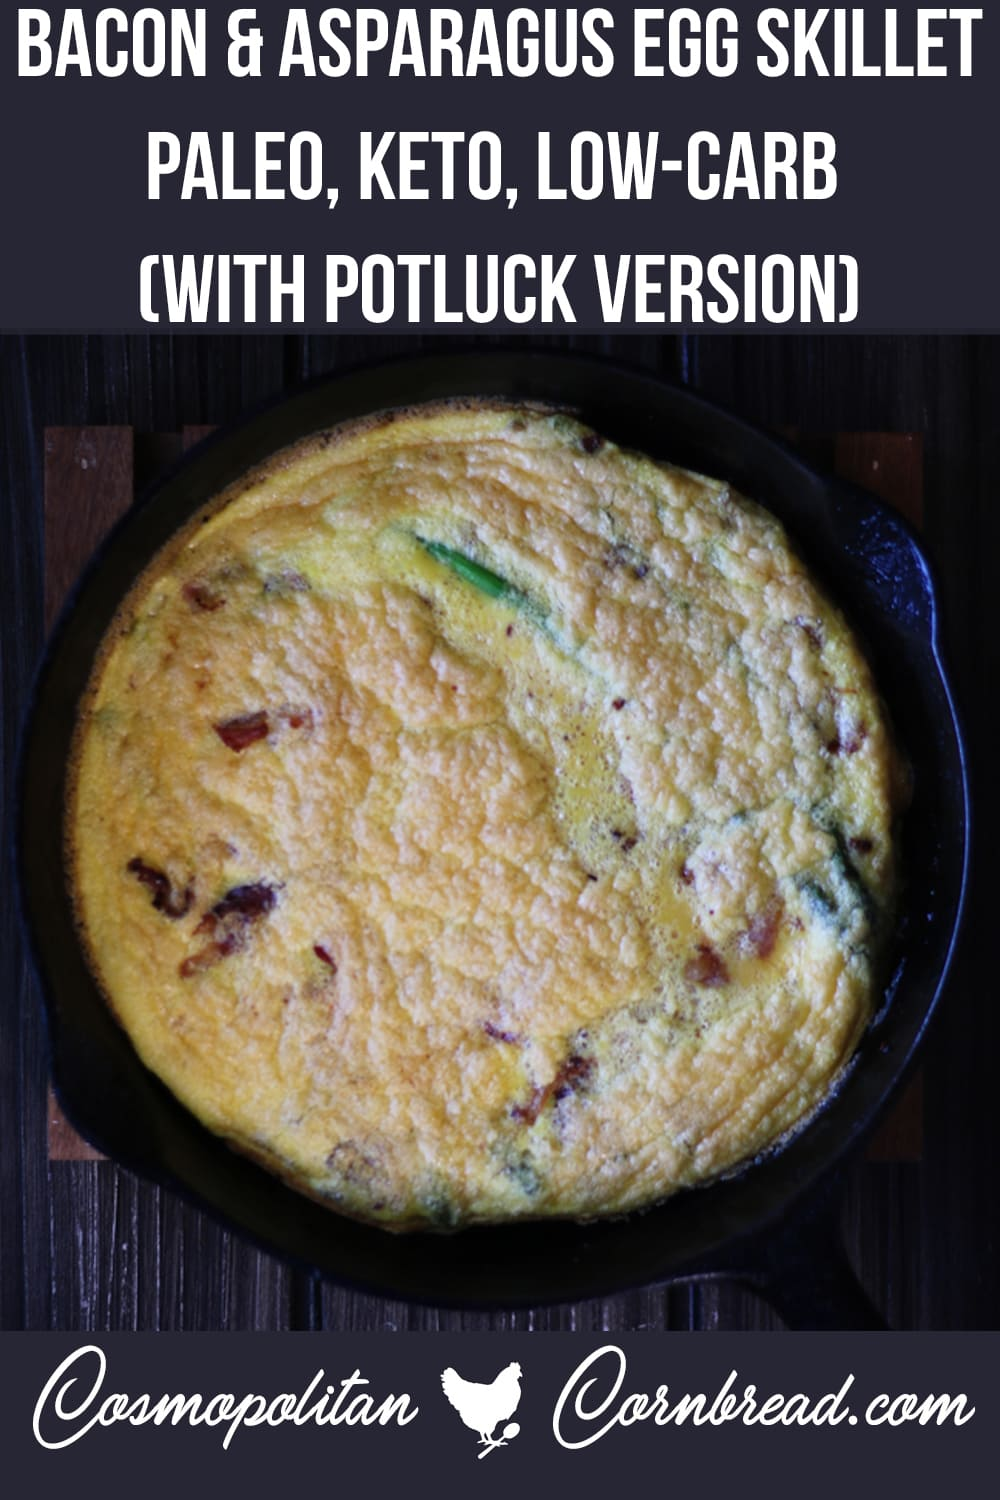 Bacon & Asparagus Egg Skillet | Paleo, Keto, Low-Carb (With Potluck Version)